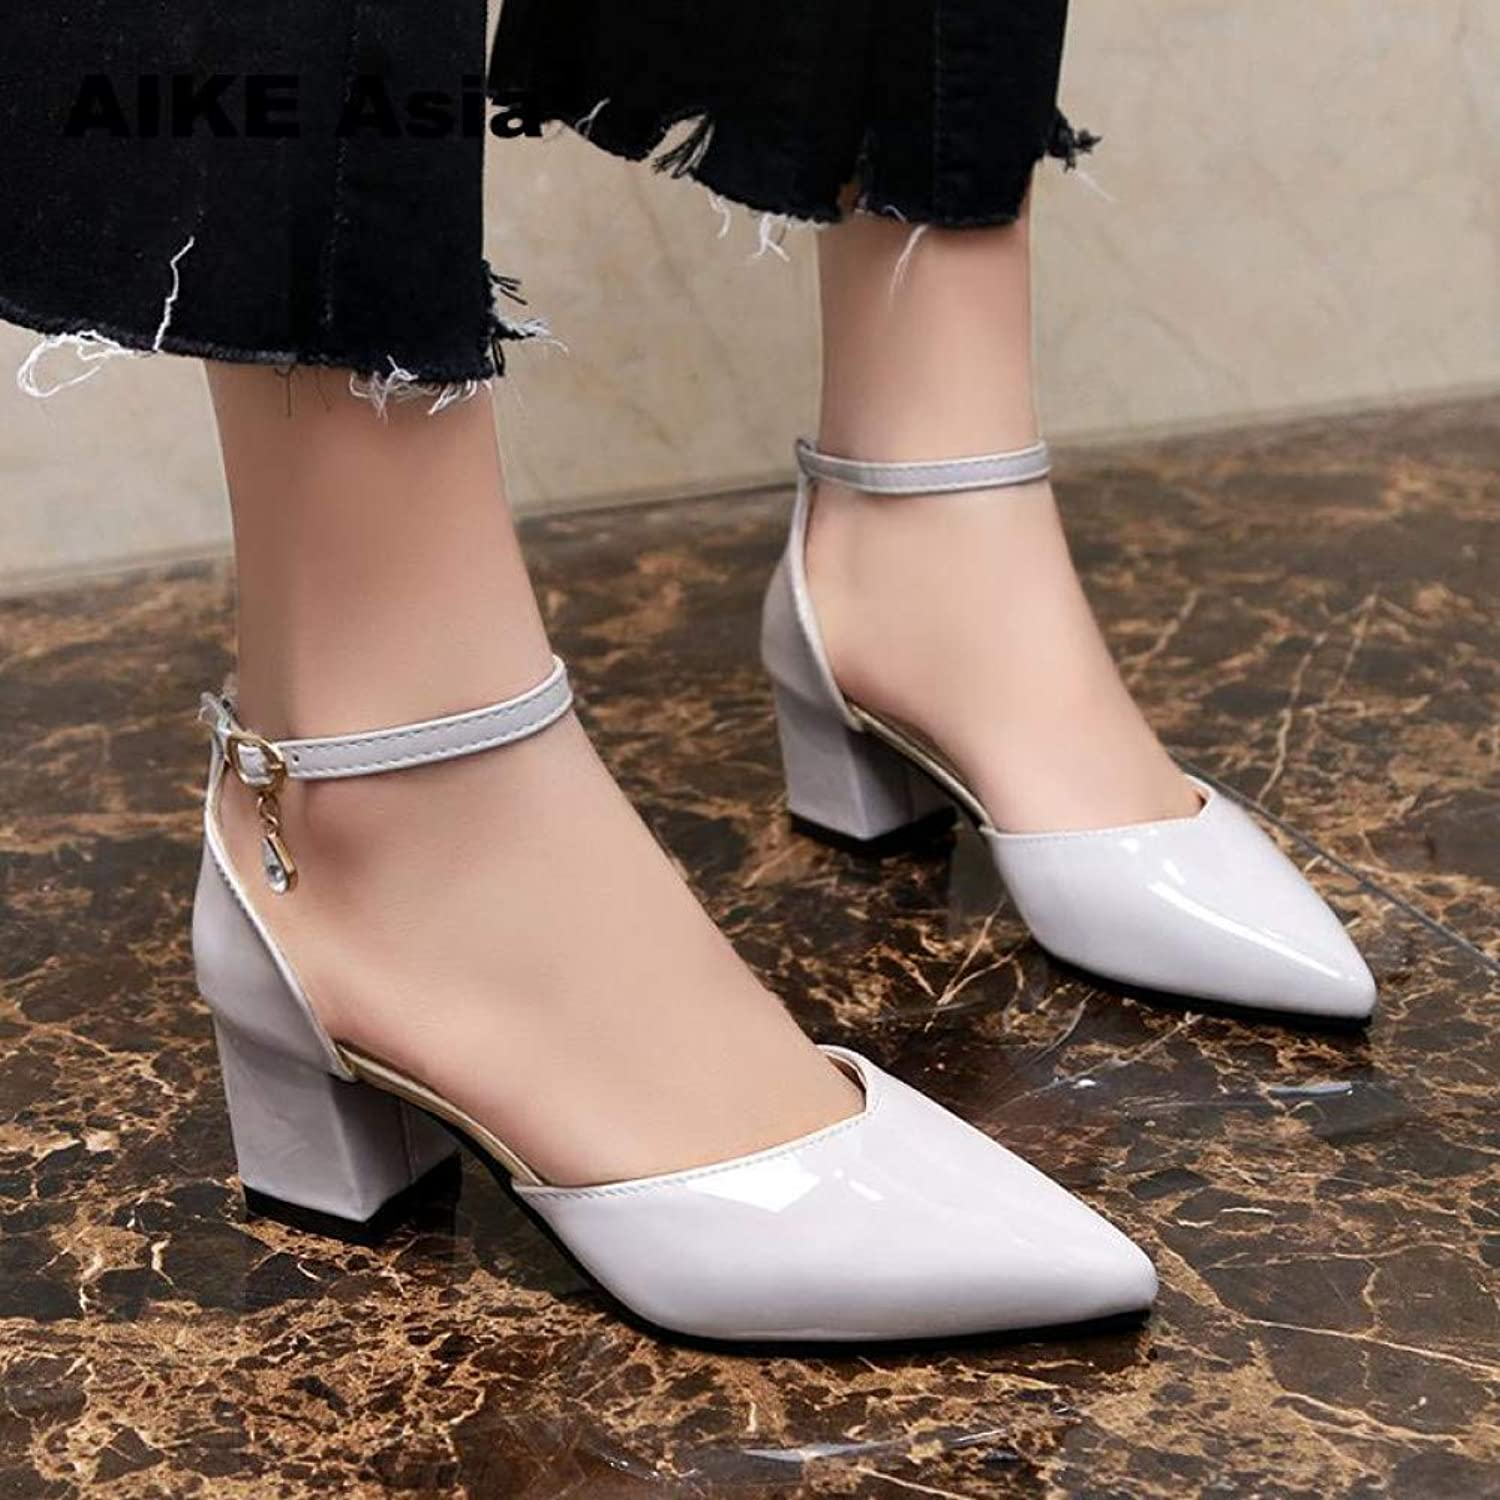 UKJSNHH igh Heels Plus Size 33-43 Dress shoes Boat Wedding Summer Women Pointed Toe Pumps Side with Pearl Extreme High Heels